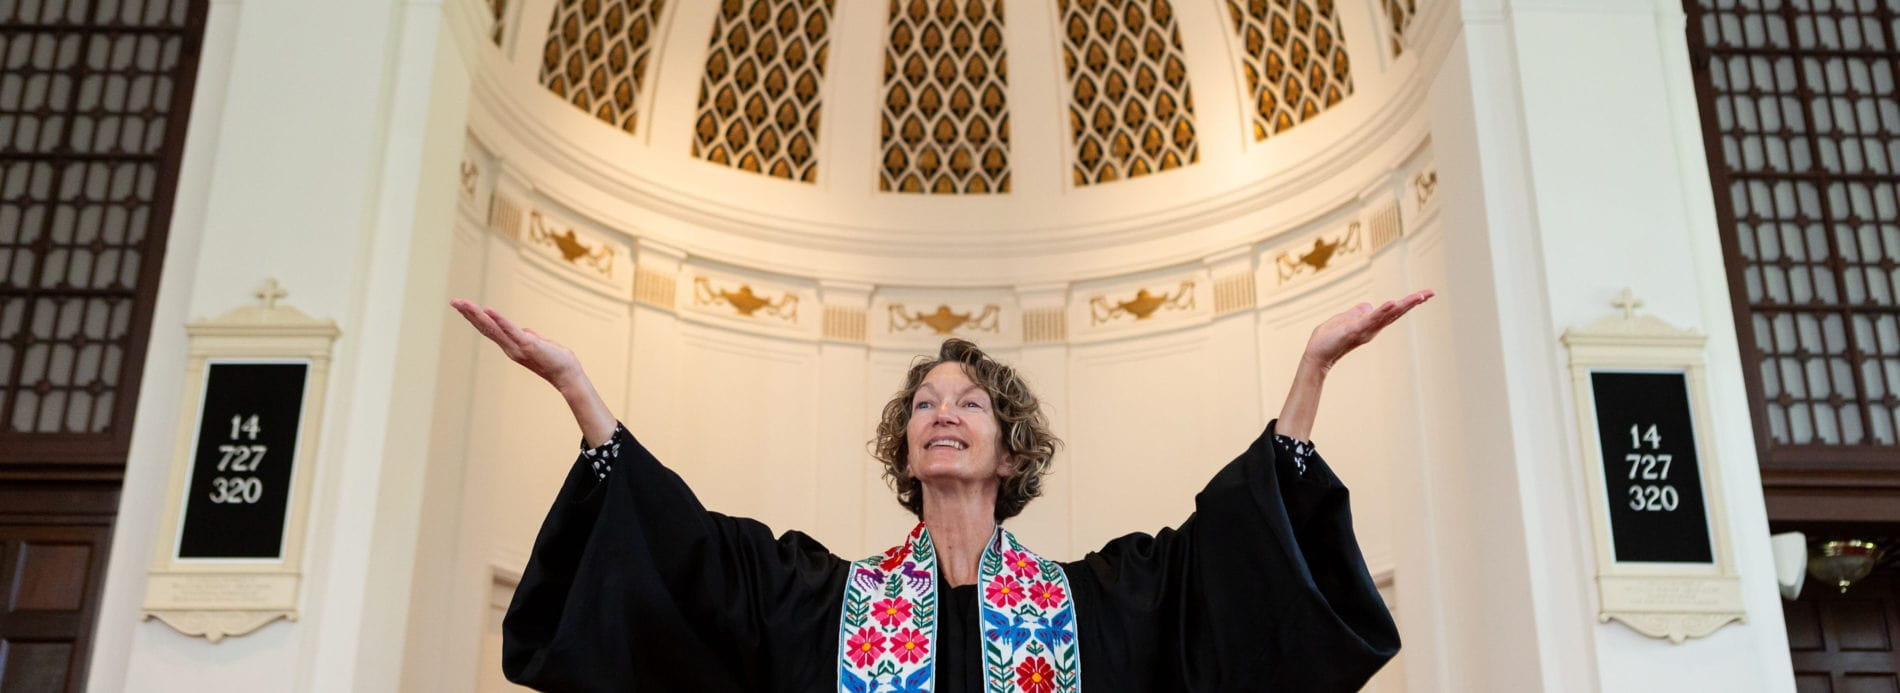 Rev. Dorothy Boulton lifts her arms and smiles as she leads worship.